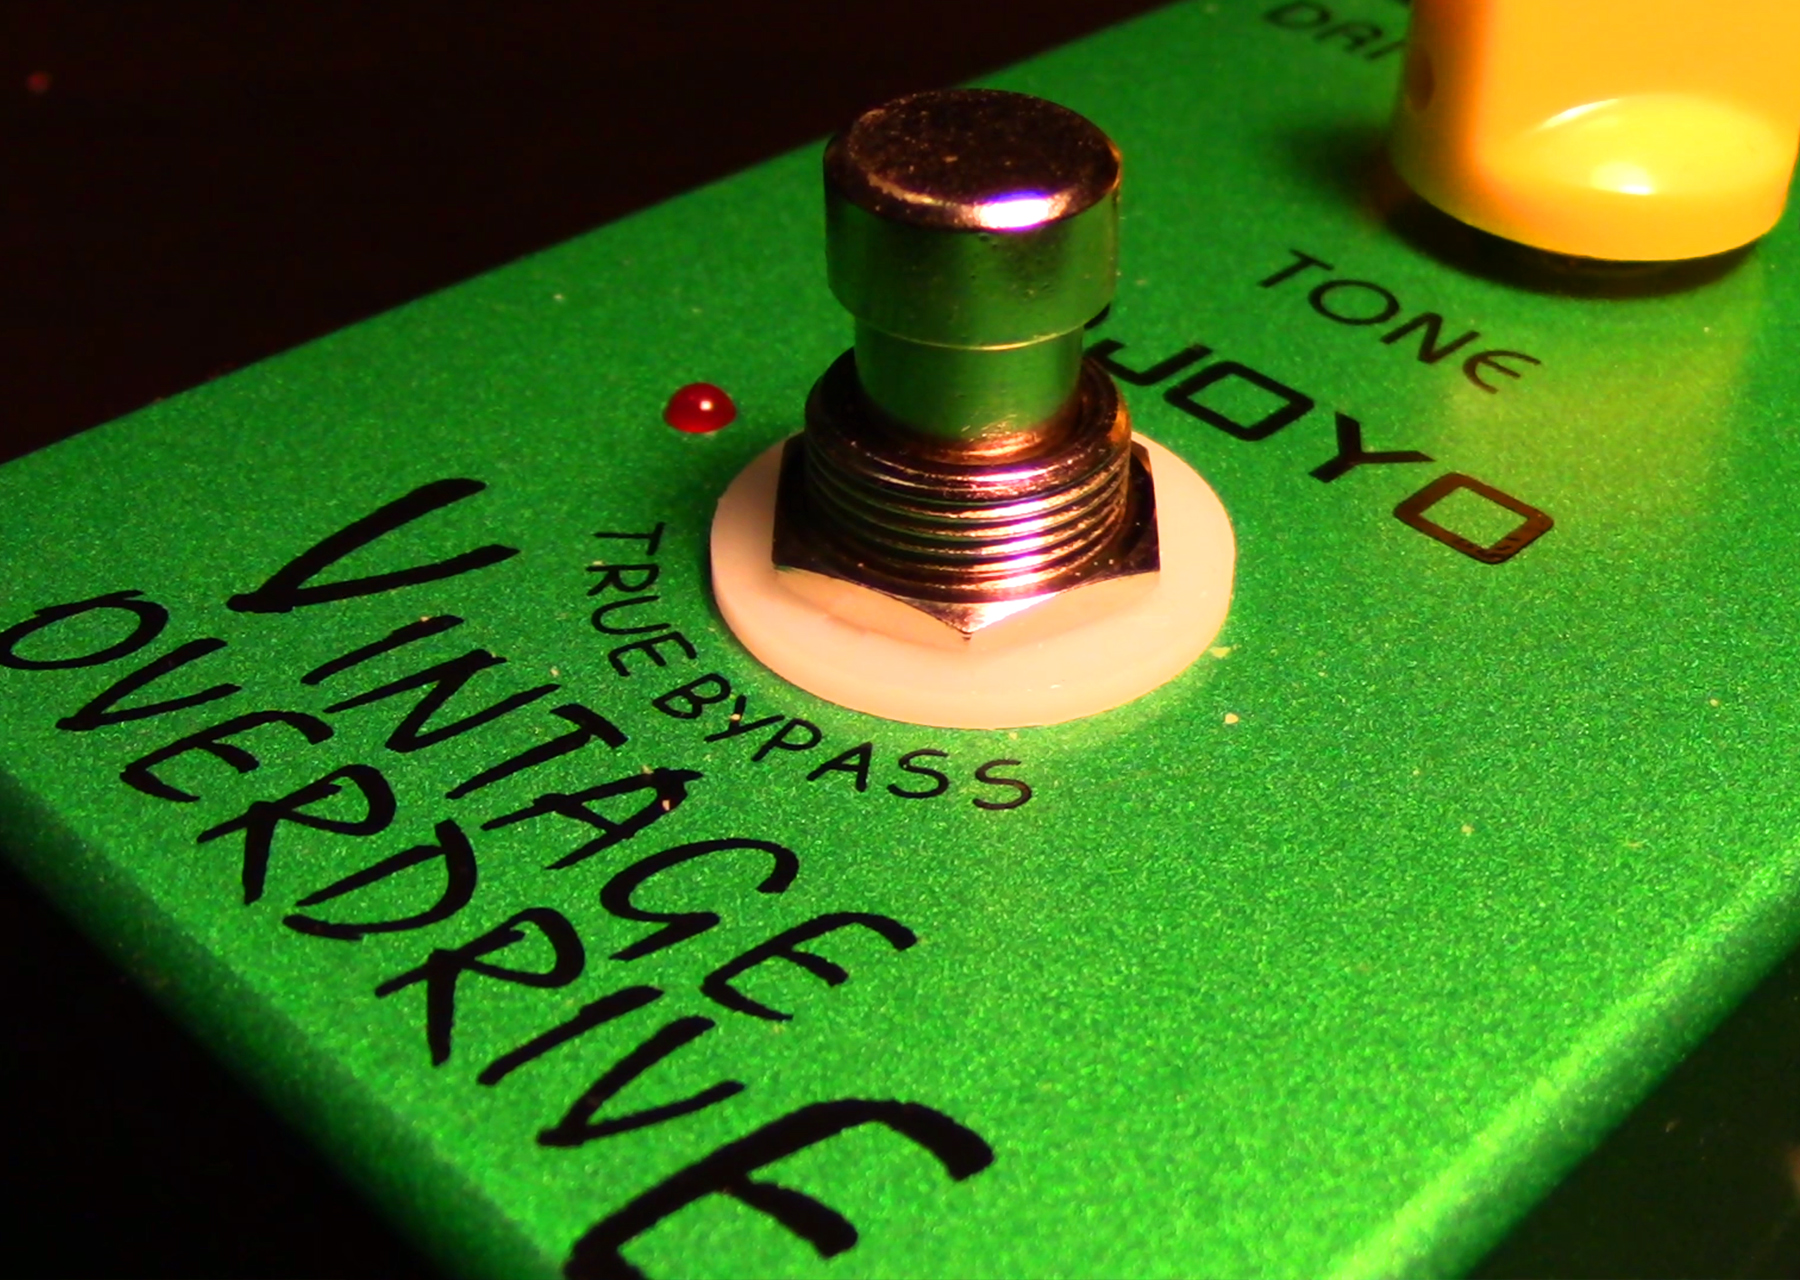 Joyo JF-01 Vintage Overdrive Pedal | Gear Review – Agufish Music